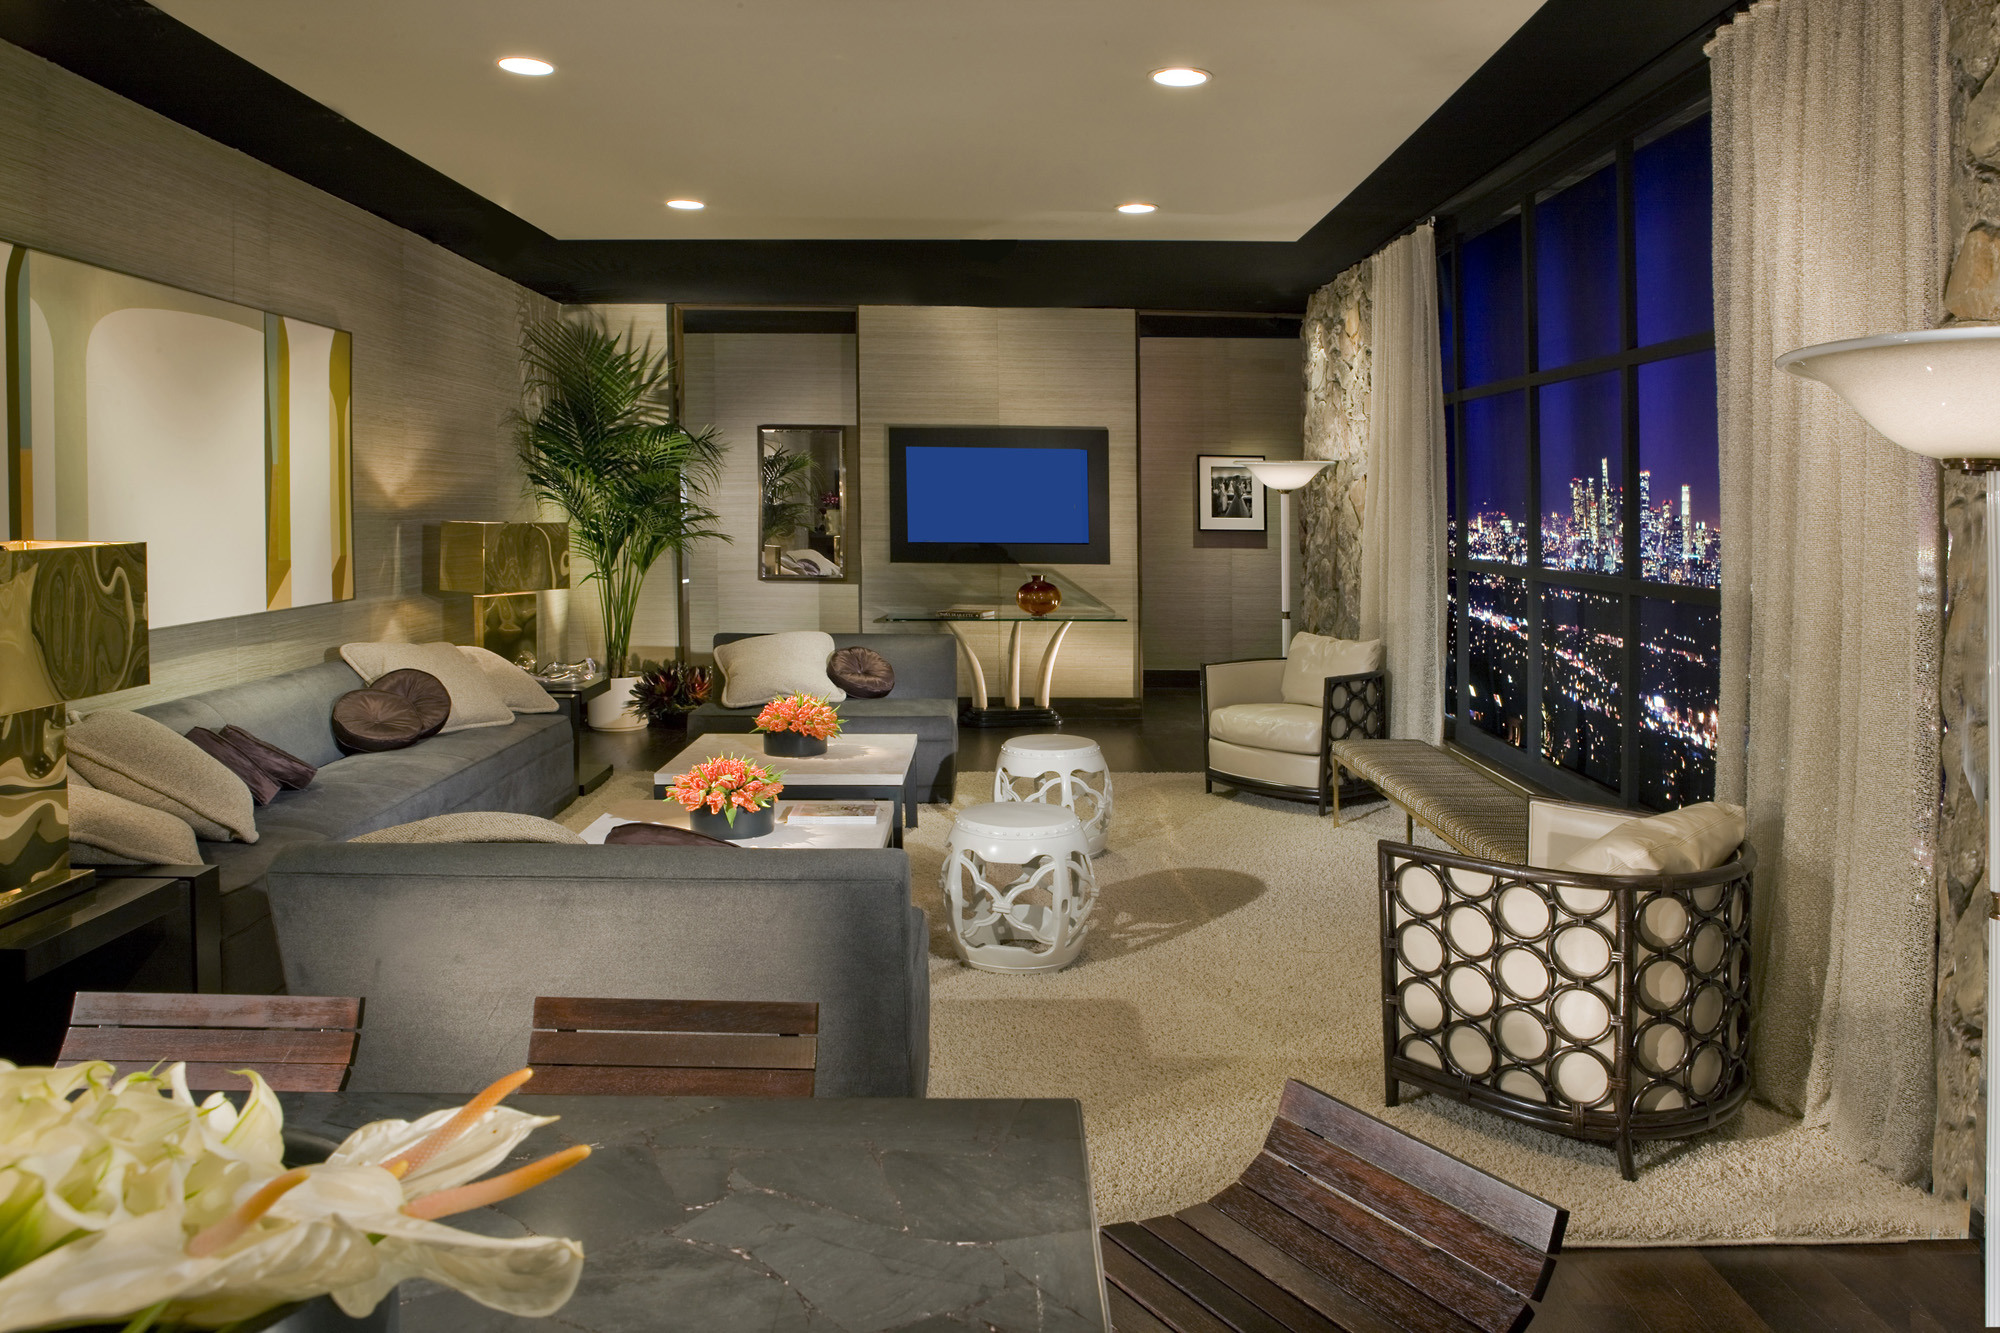 Architectural Digest Chooses Stephen Shadley To Design